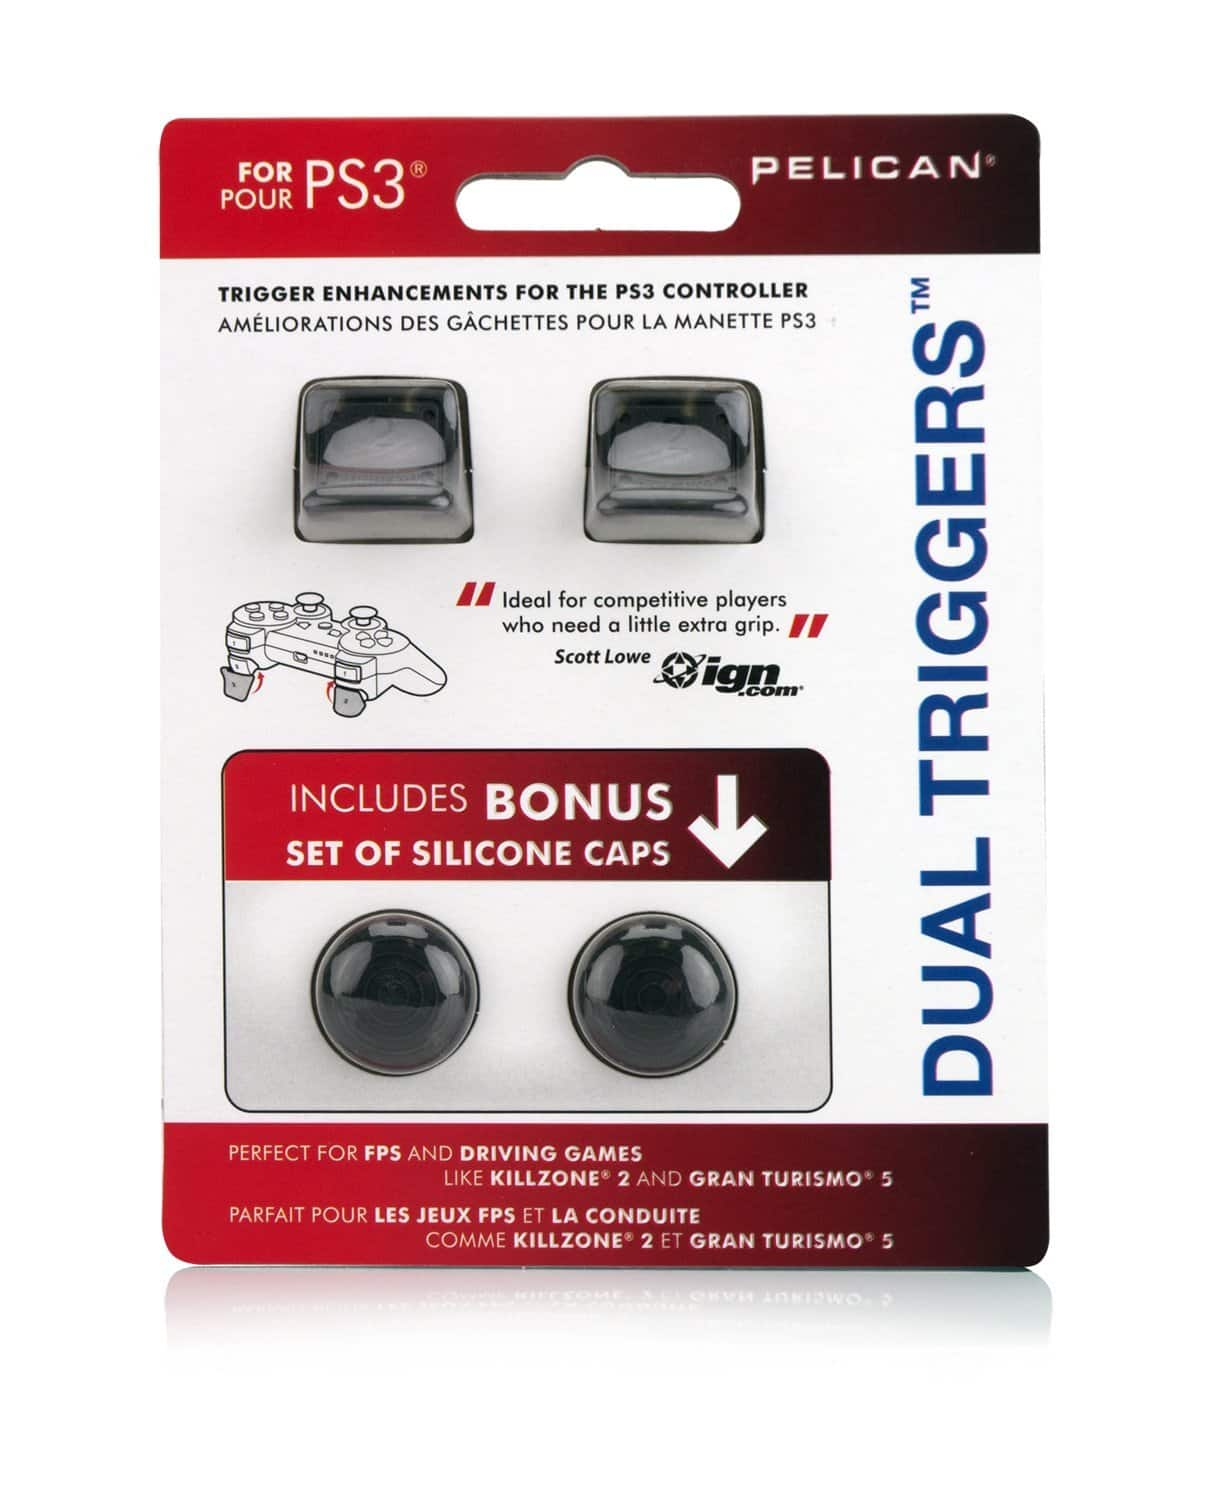 PDP Pelican PS3 Dual Triggers with Bonus Silicone Caps for $1.99 @amazon